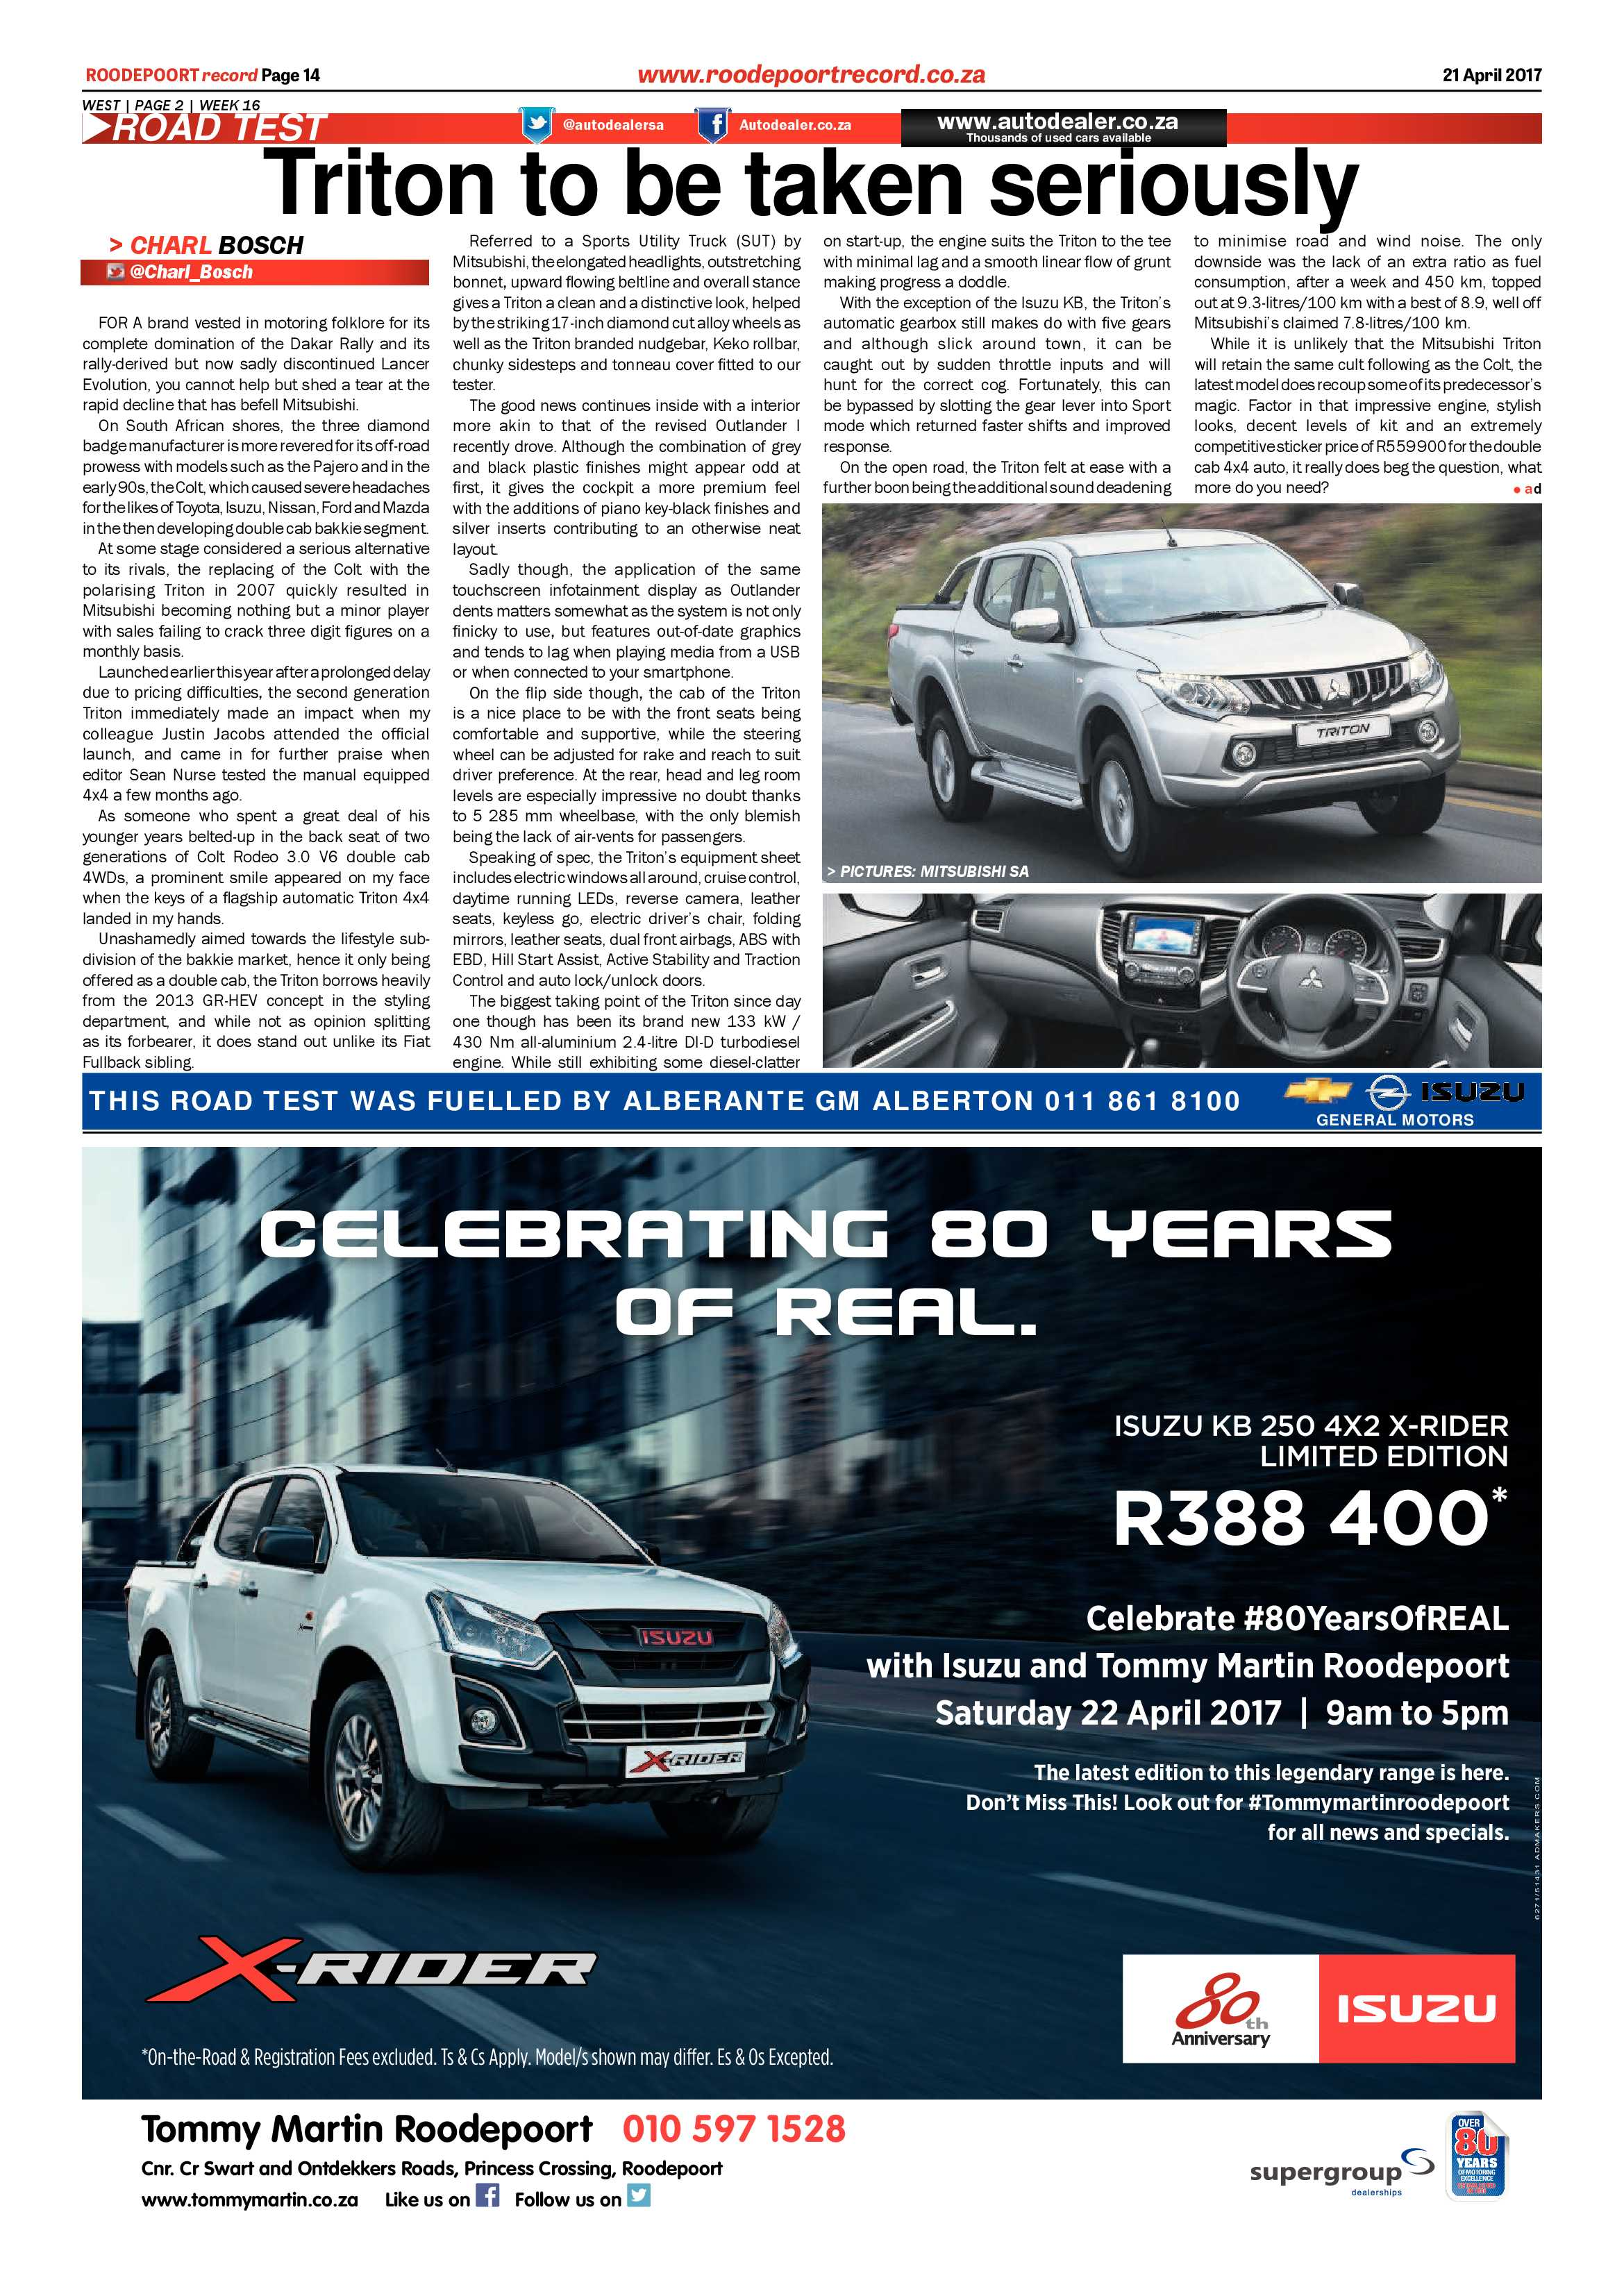 roodepoort-record-21-april-2017-epapers-page-14